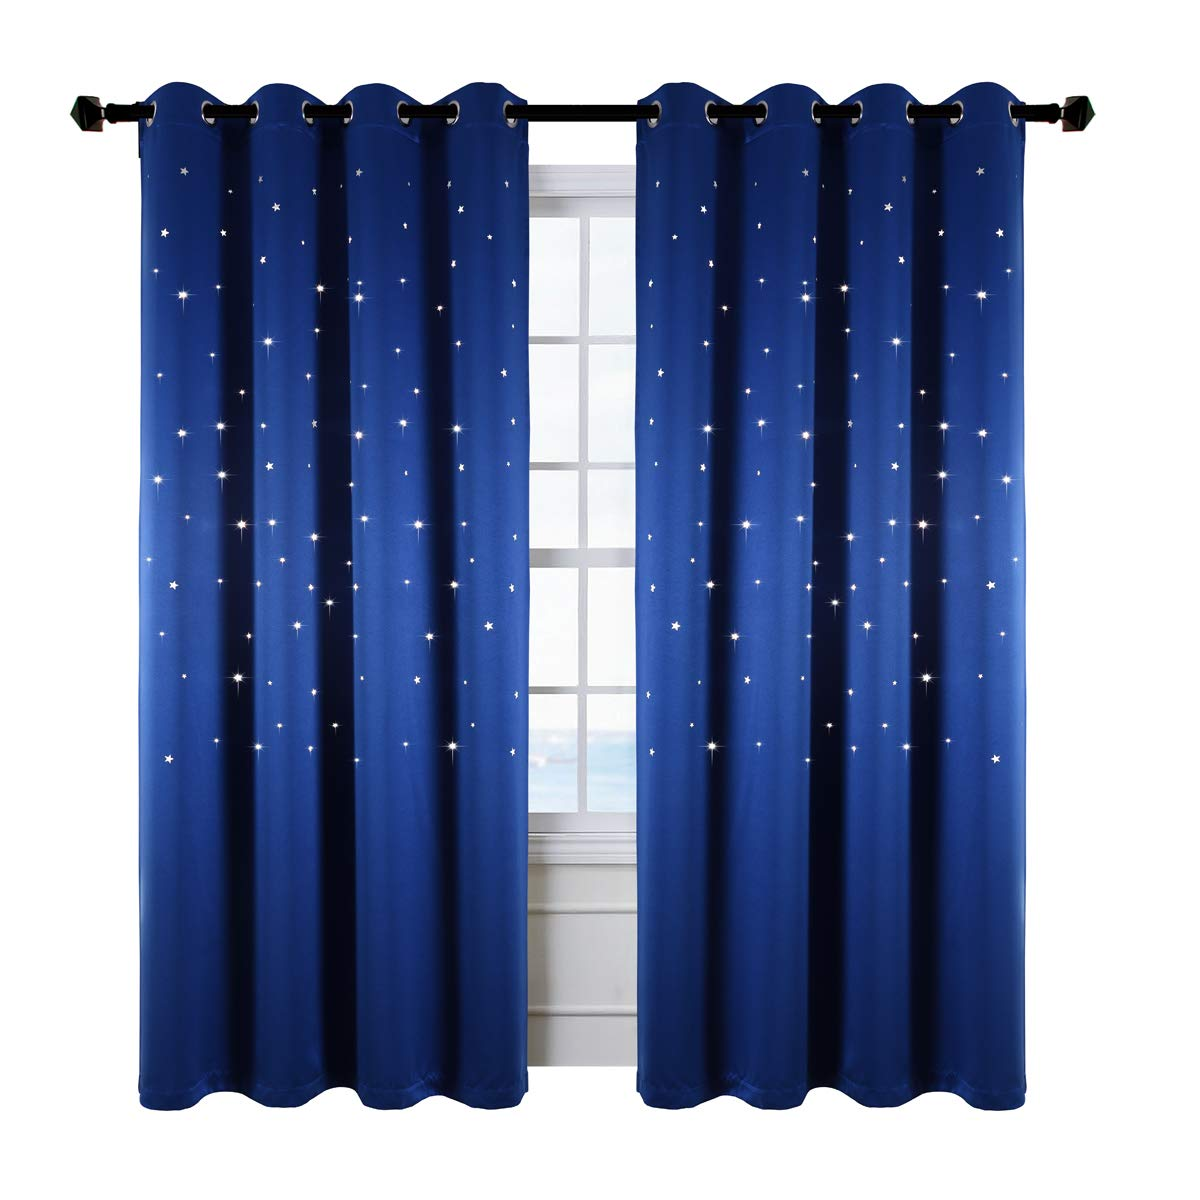 Grommet Top Blackout Curtains for Space Theme Bedroom, Kotile 2 Panels Thermal Insulated Glitter Stars Luxurious Soft Window Panels with Die Cut Twinkle for Kids Room (W52 X L84 inches, Royal Blue)